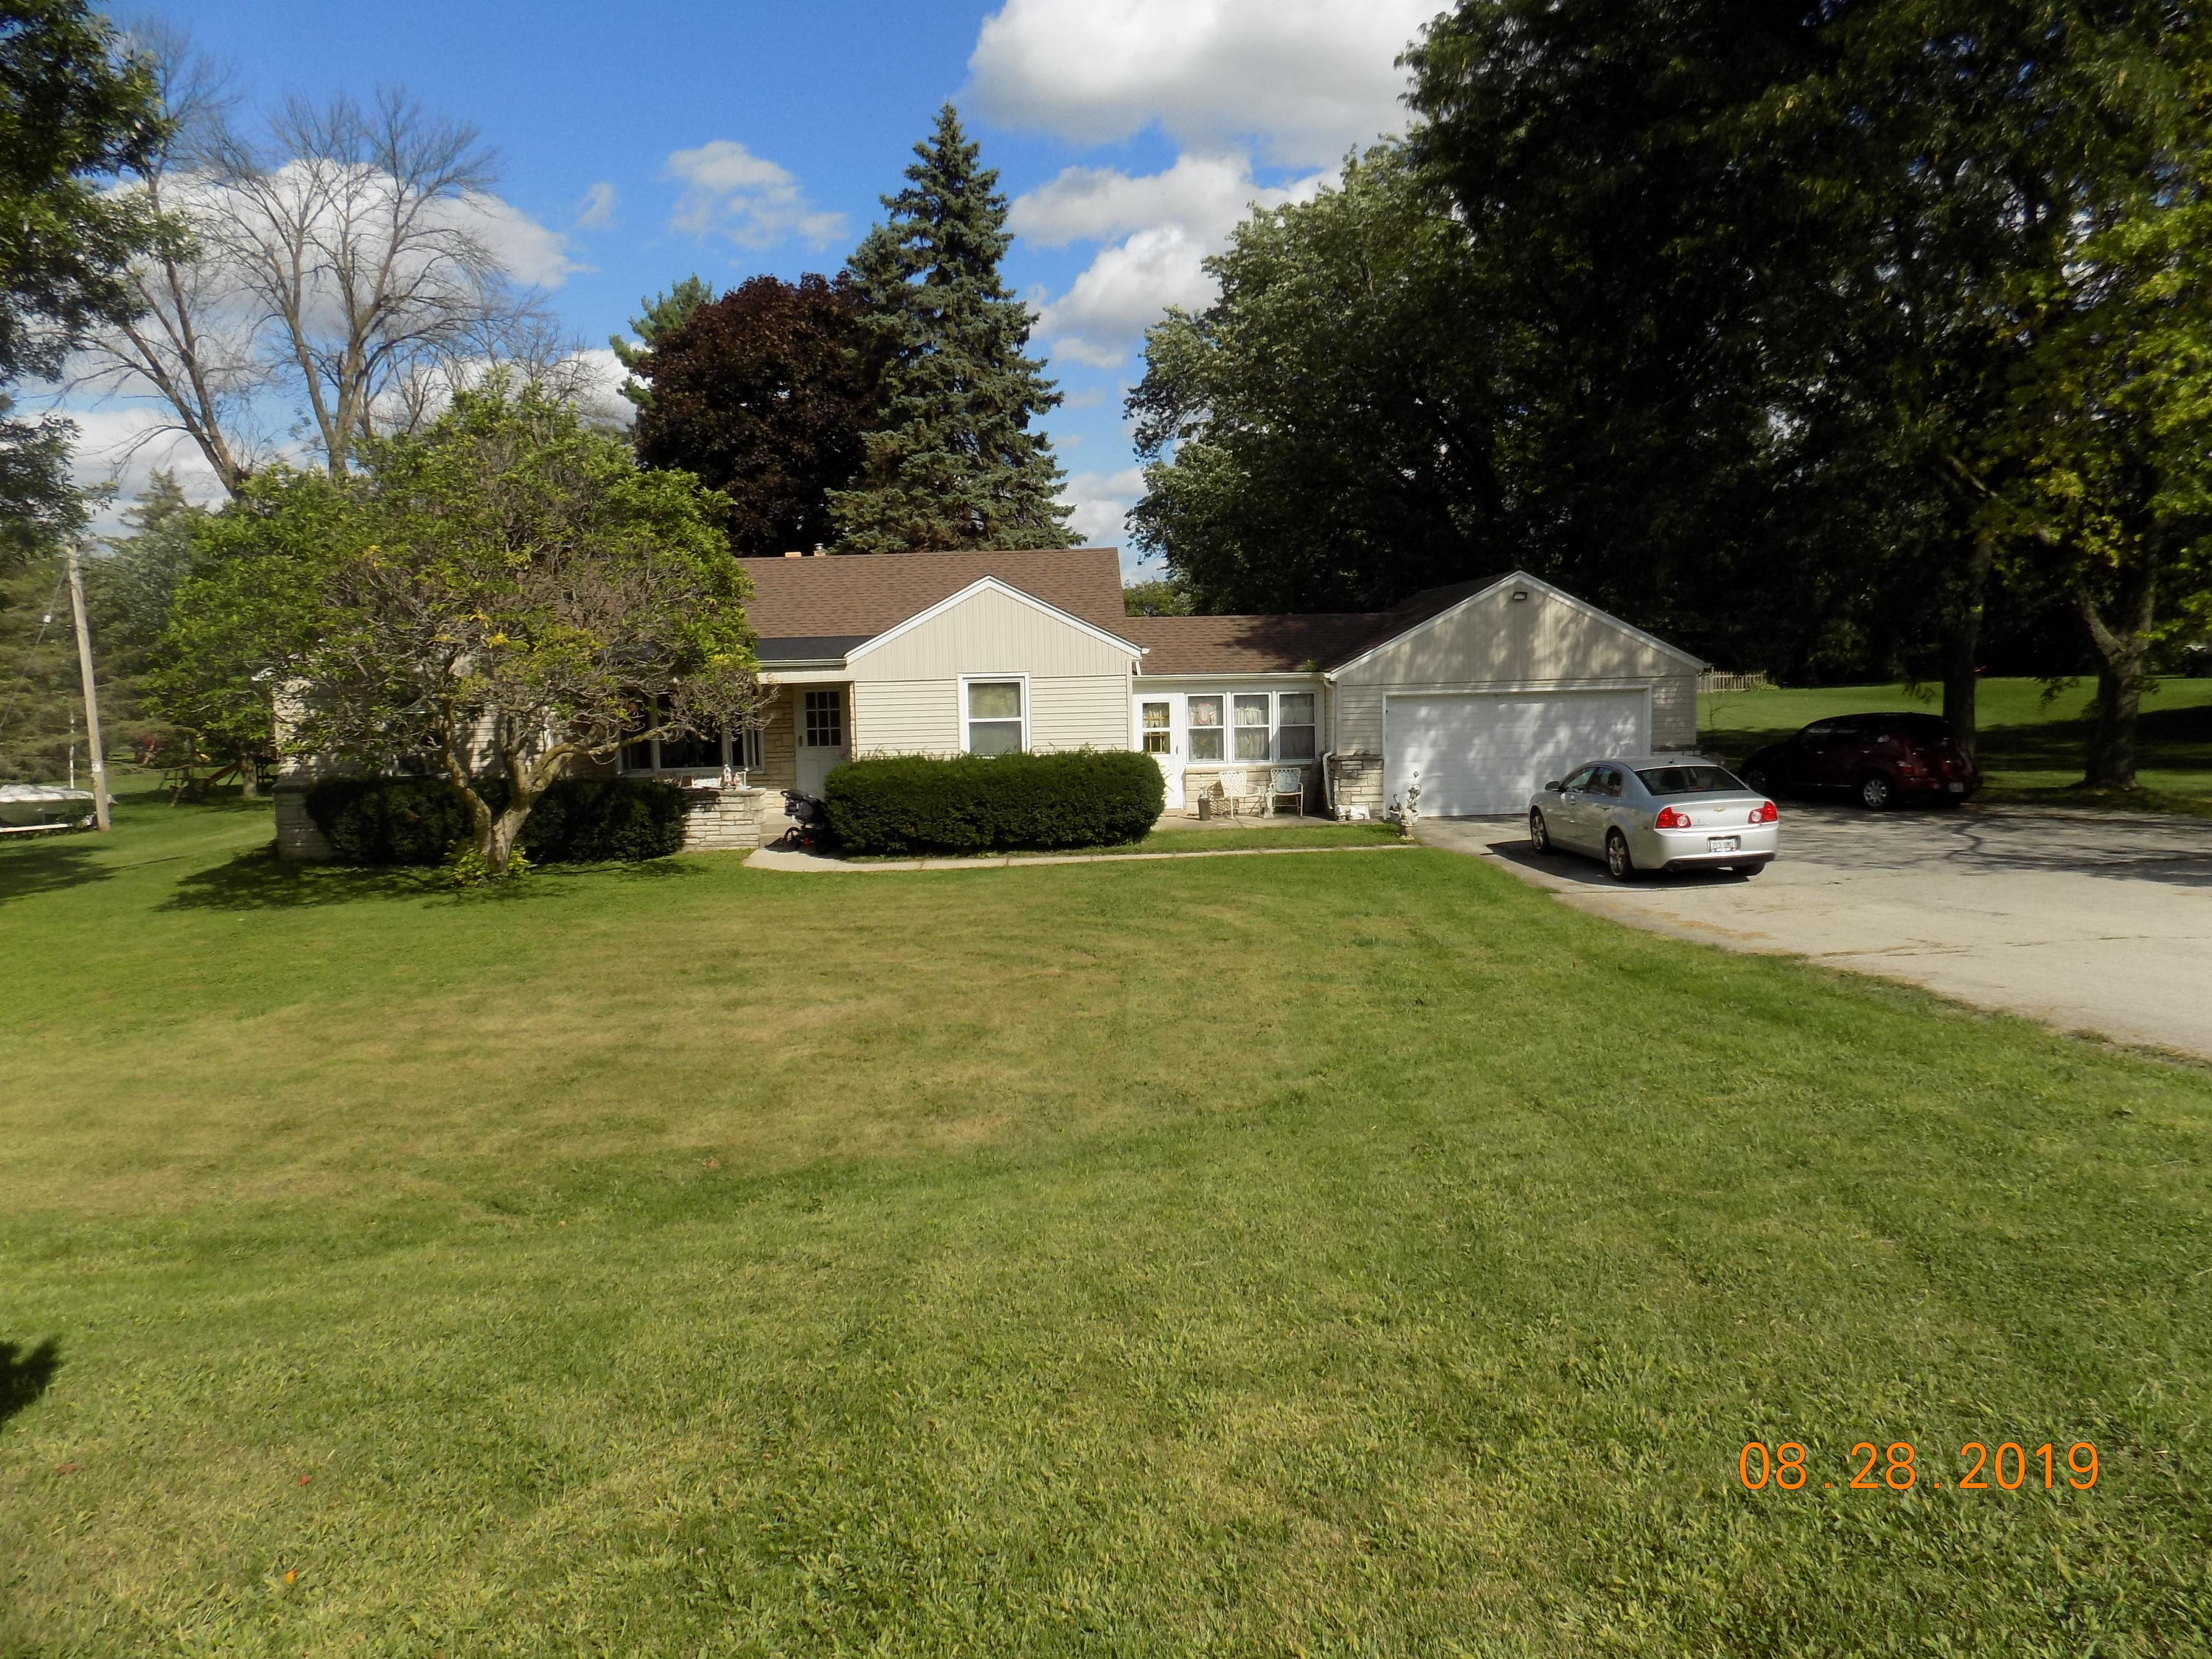 1530 Calhoun Rd, Brookfield, Wisconsin 53005, 3 Bedrooms Bedrooms, ,1 BathroomBathrooms,Single-Family,For Sale,Calhoun Rd,1666548